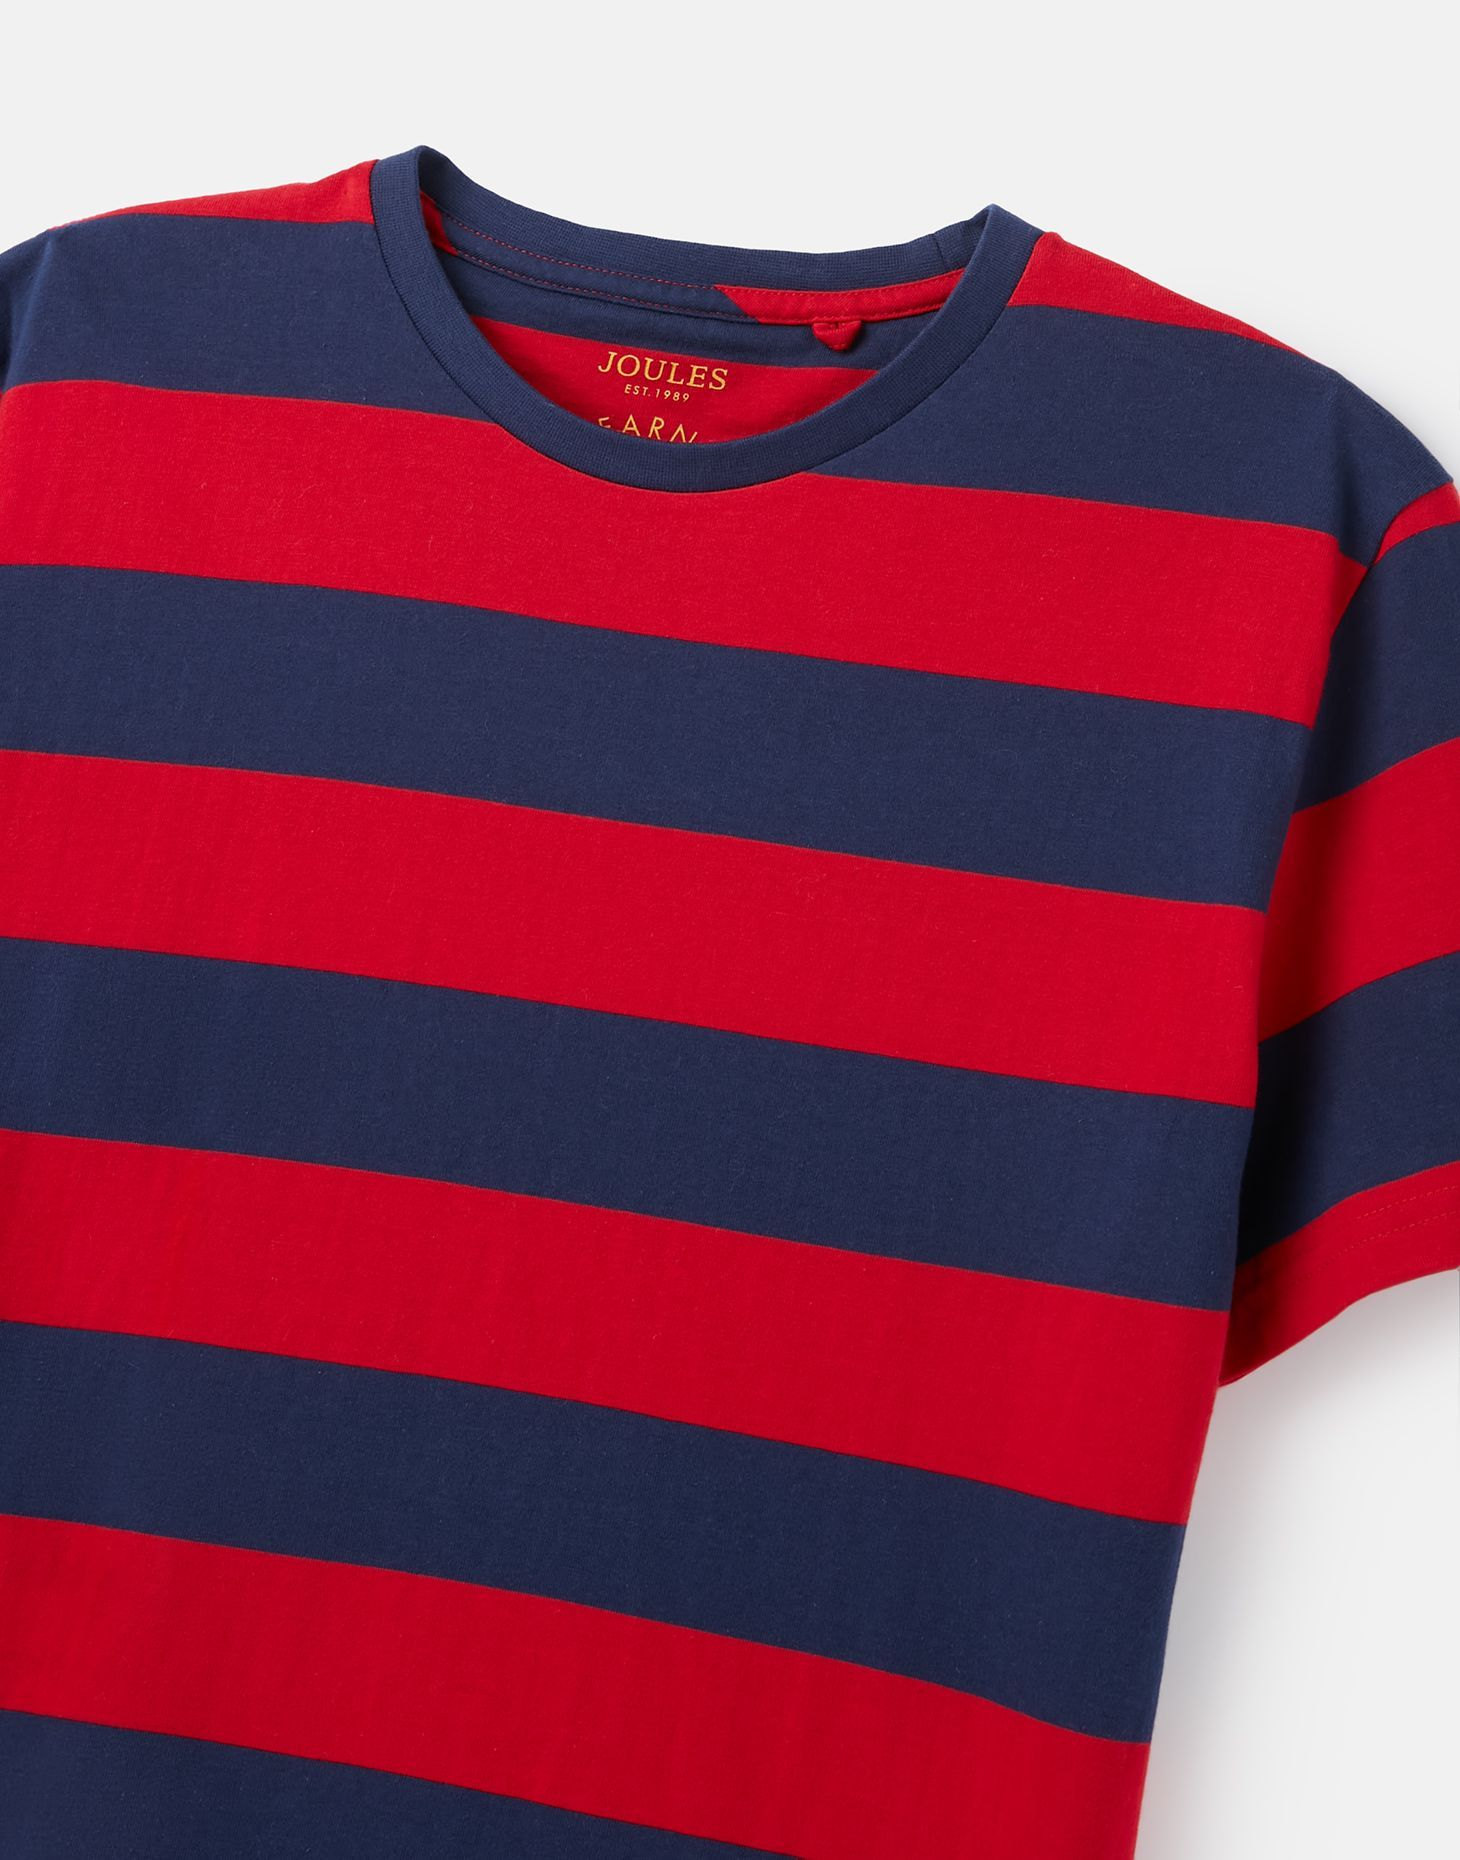 Joules Mens Boathouse T Shirt